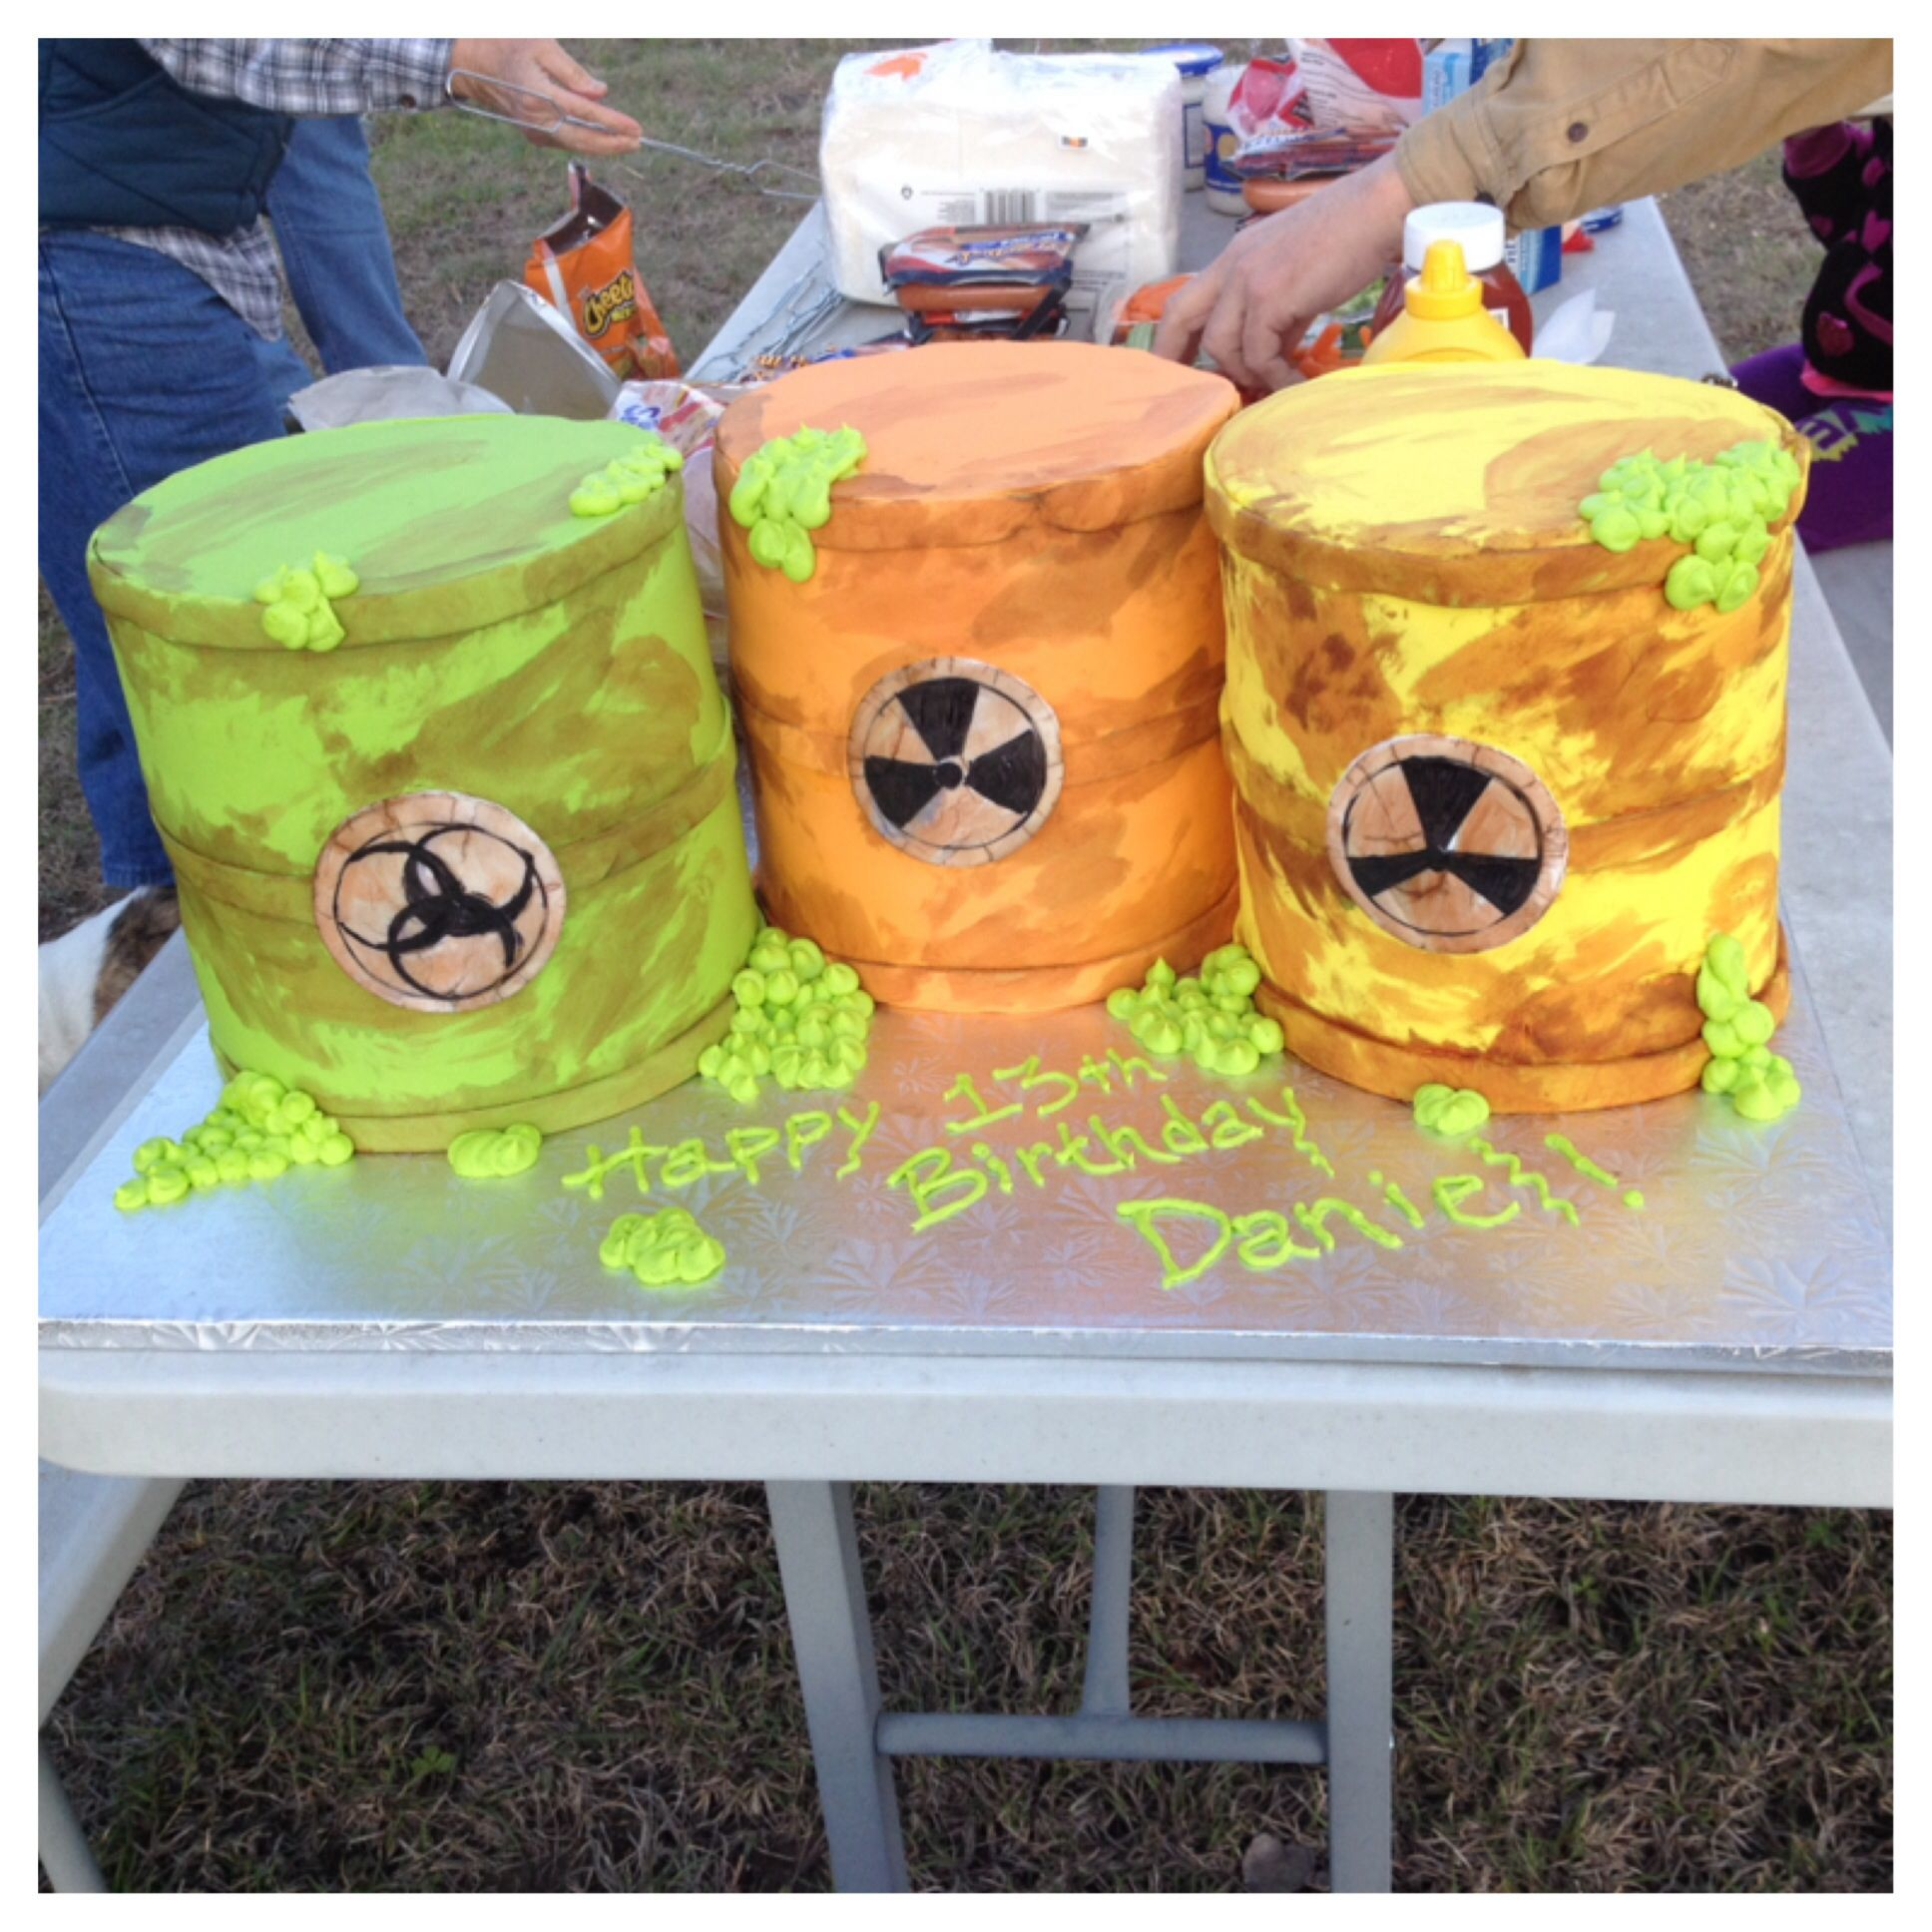 Mad scientist barrels of toxic waste cake